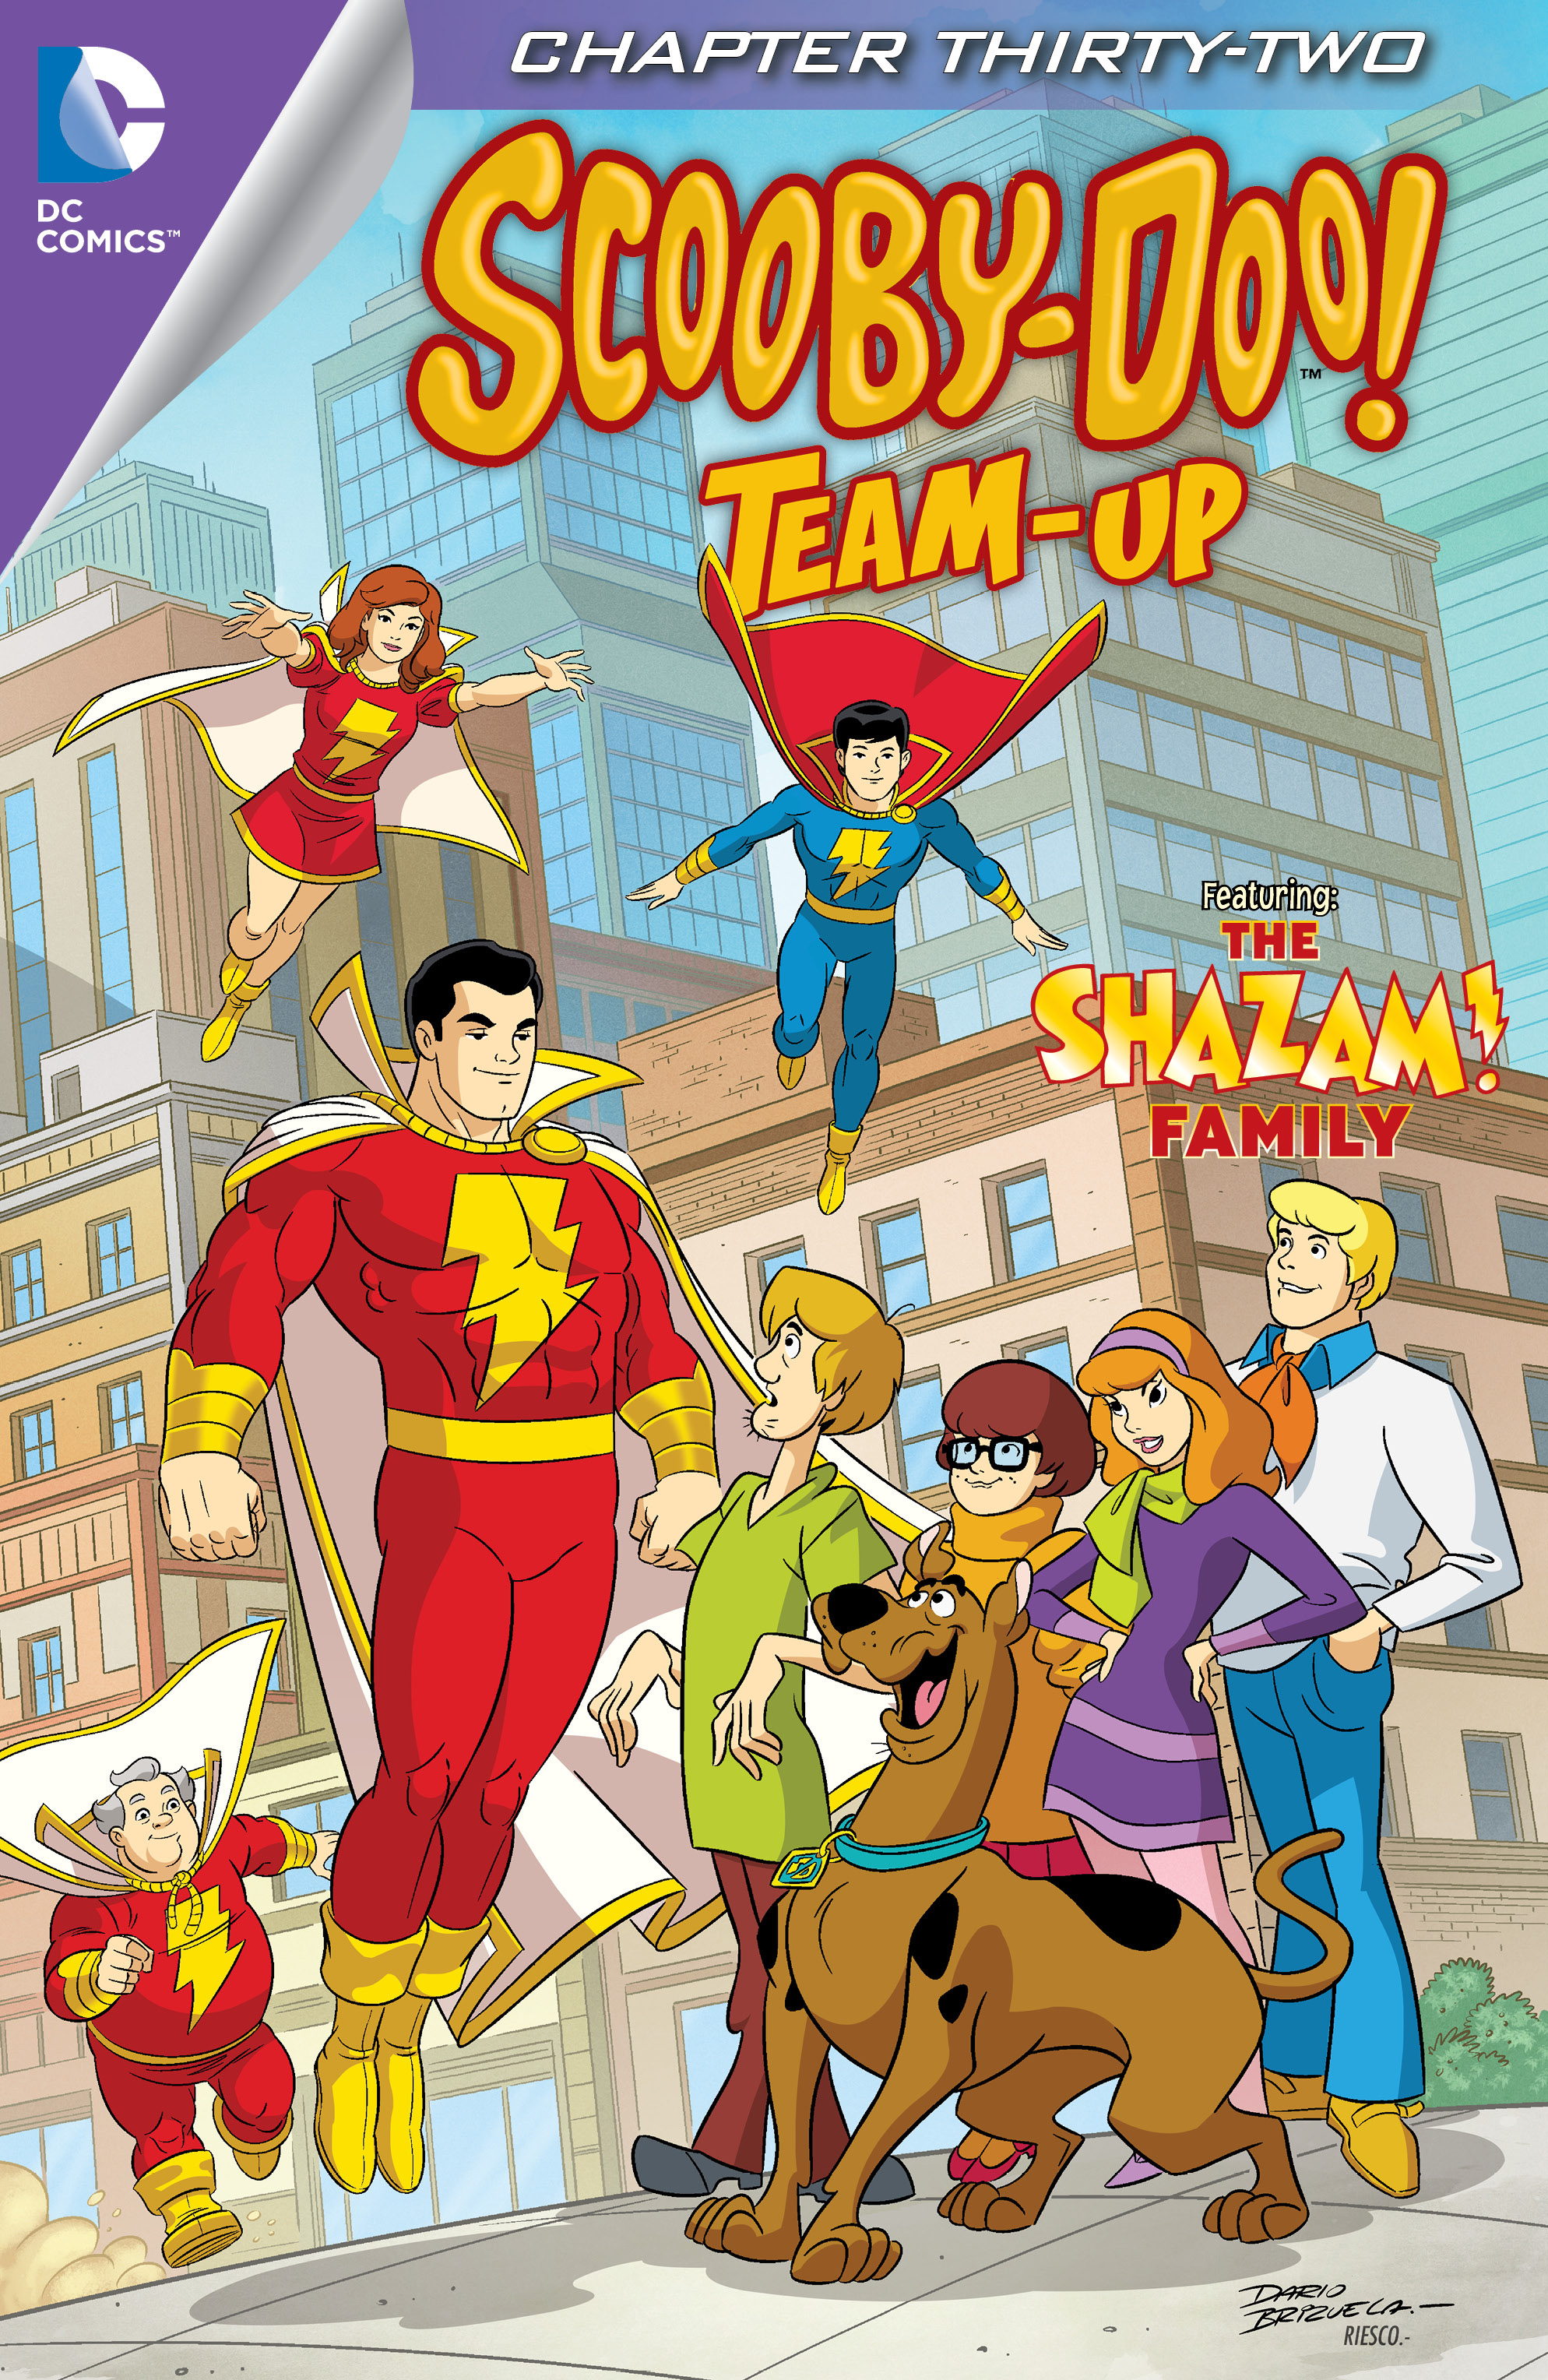 Read online Scooby-Doo! Team-Up comic -  Issue #32 - 2